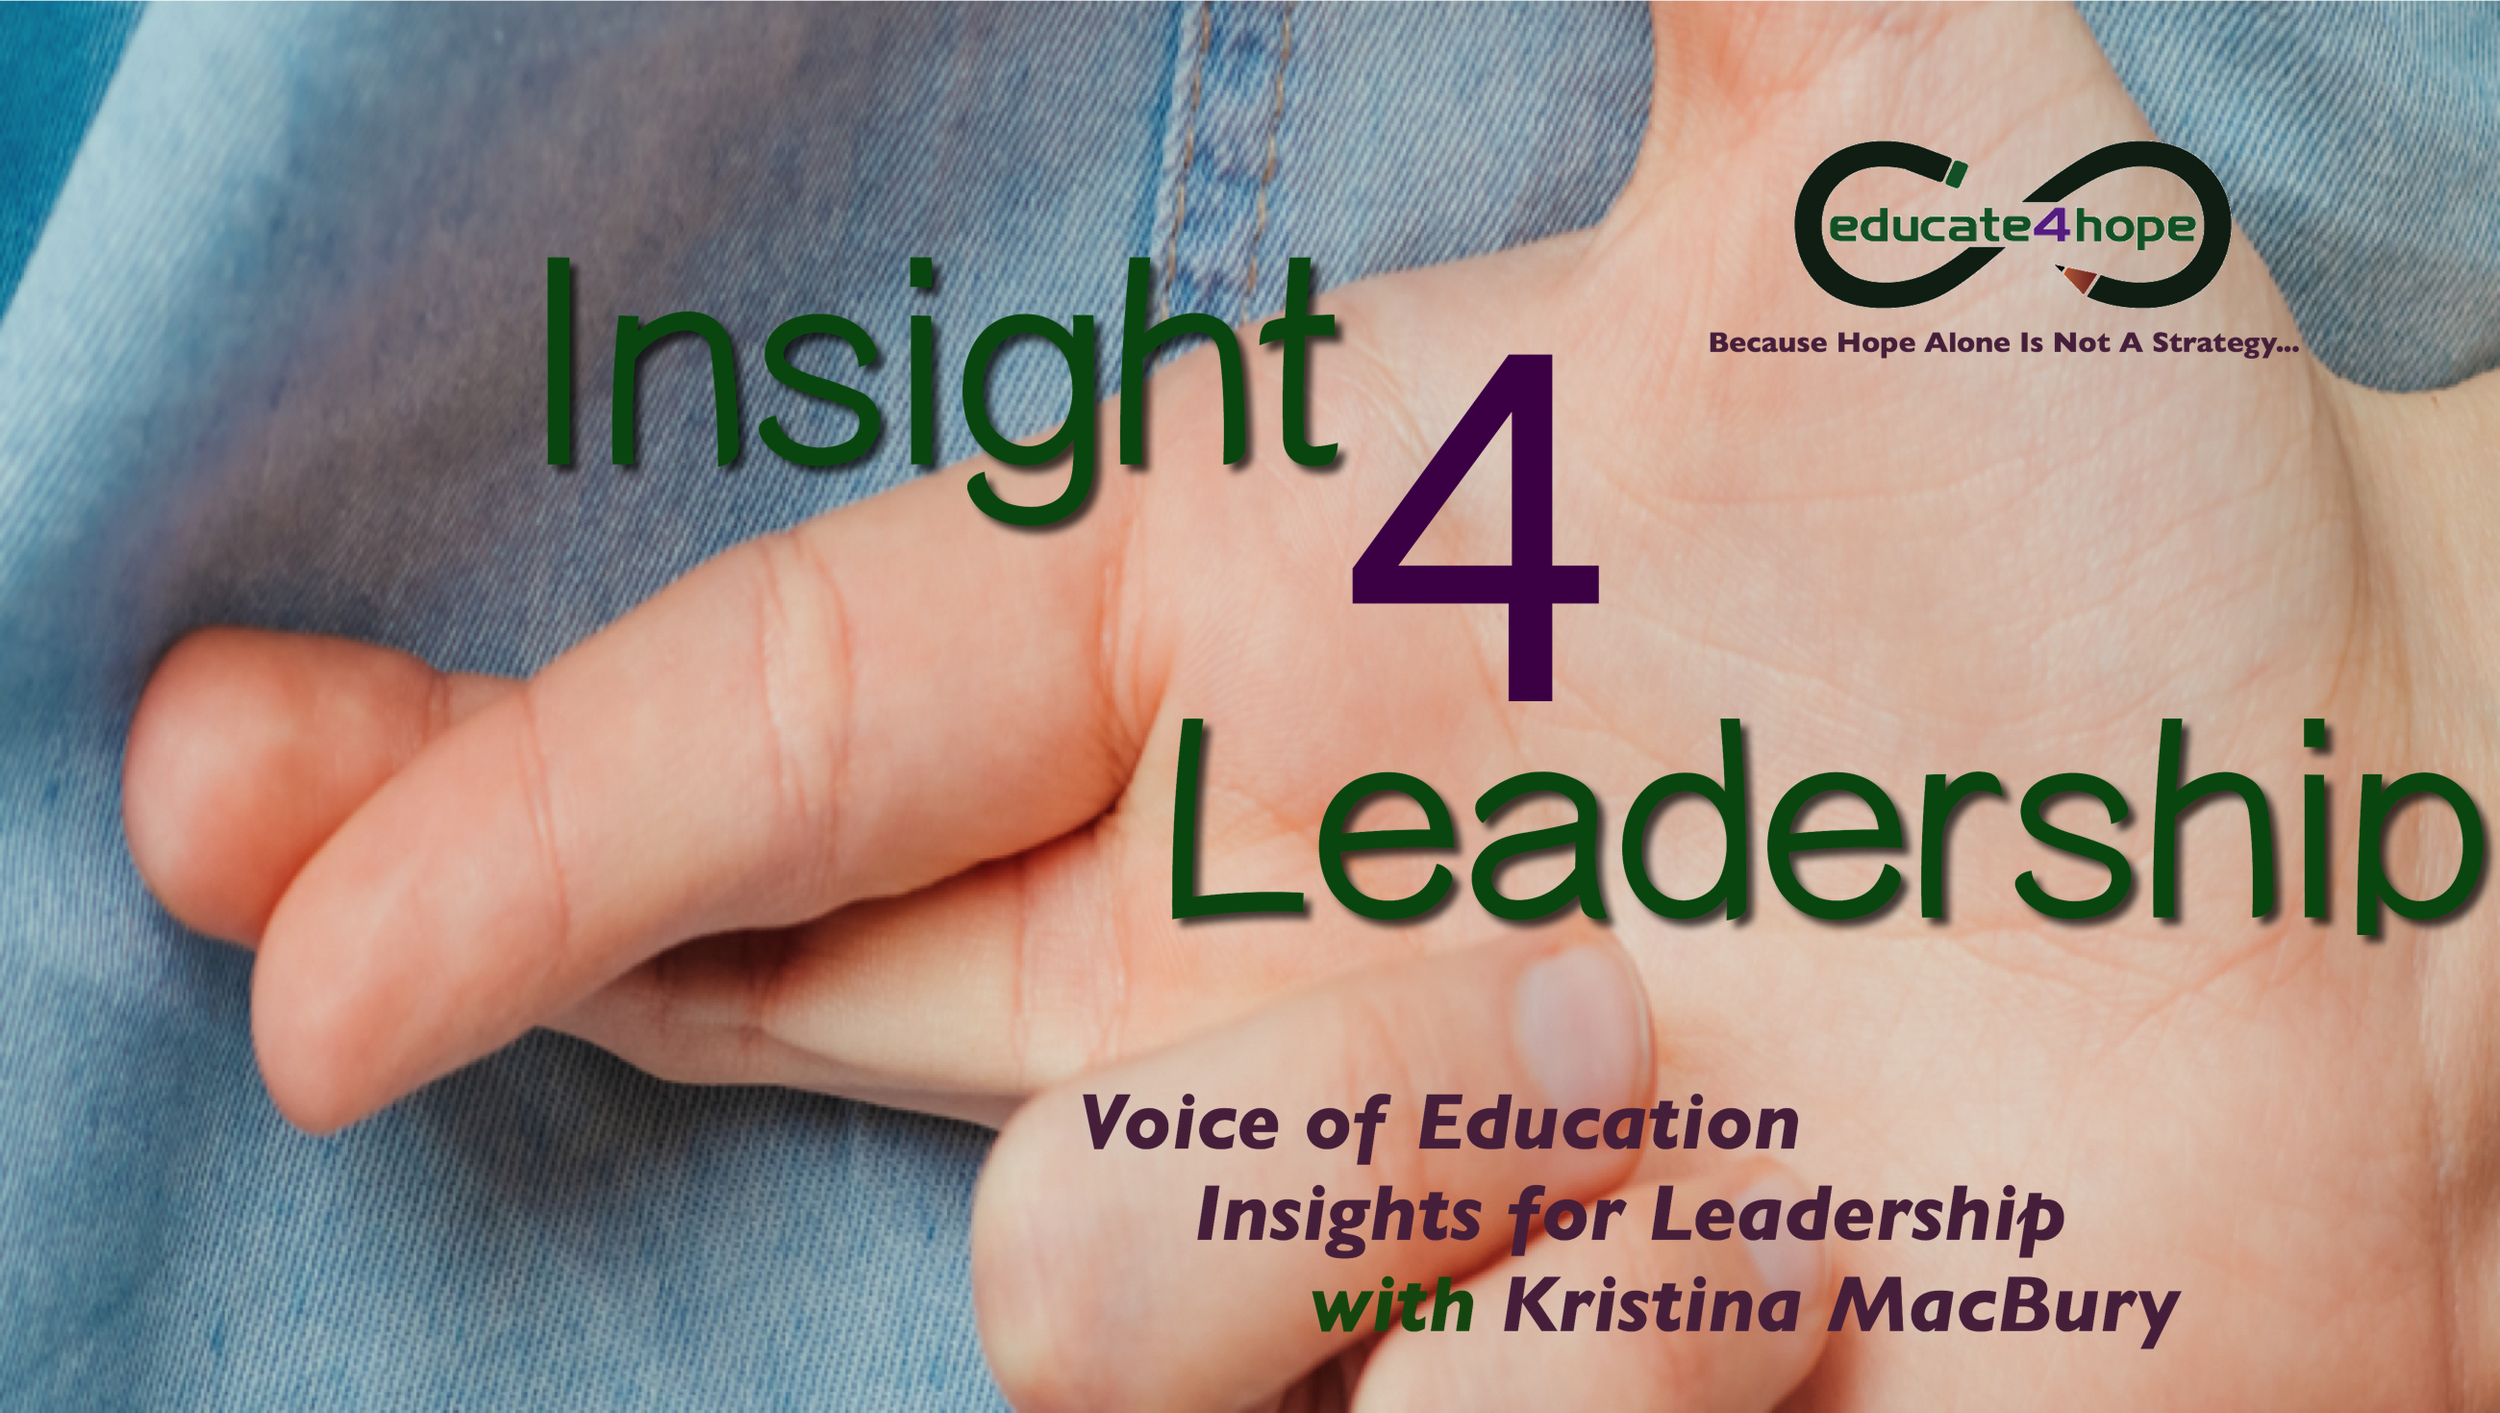 EDUCATE4HOPE's Leadership Podcast